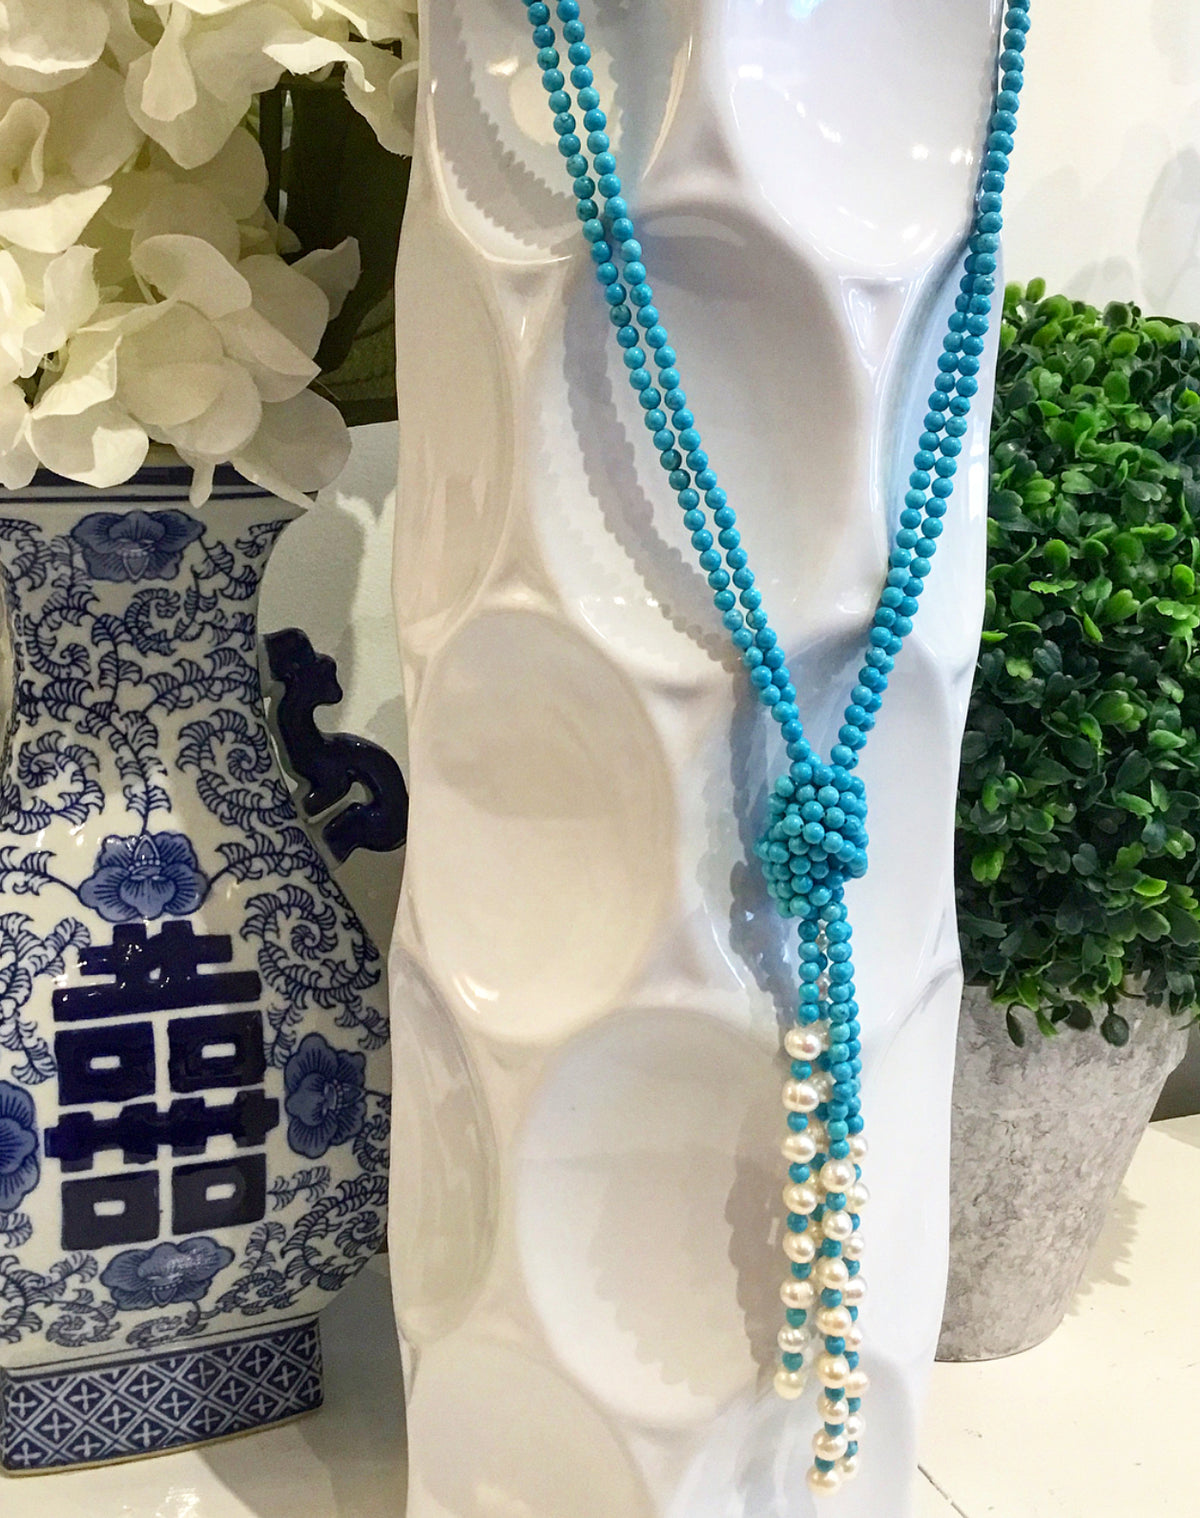 Monday Must-Have: The Perfect Classic Blue & White Necklace for Your One-of-a-Kind-Style